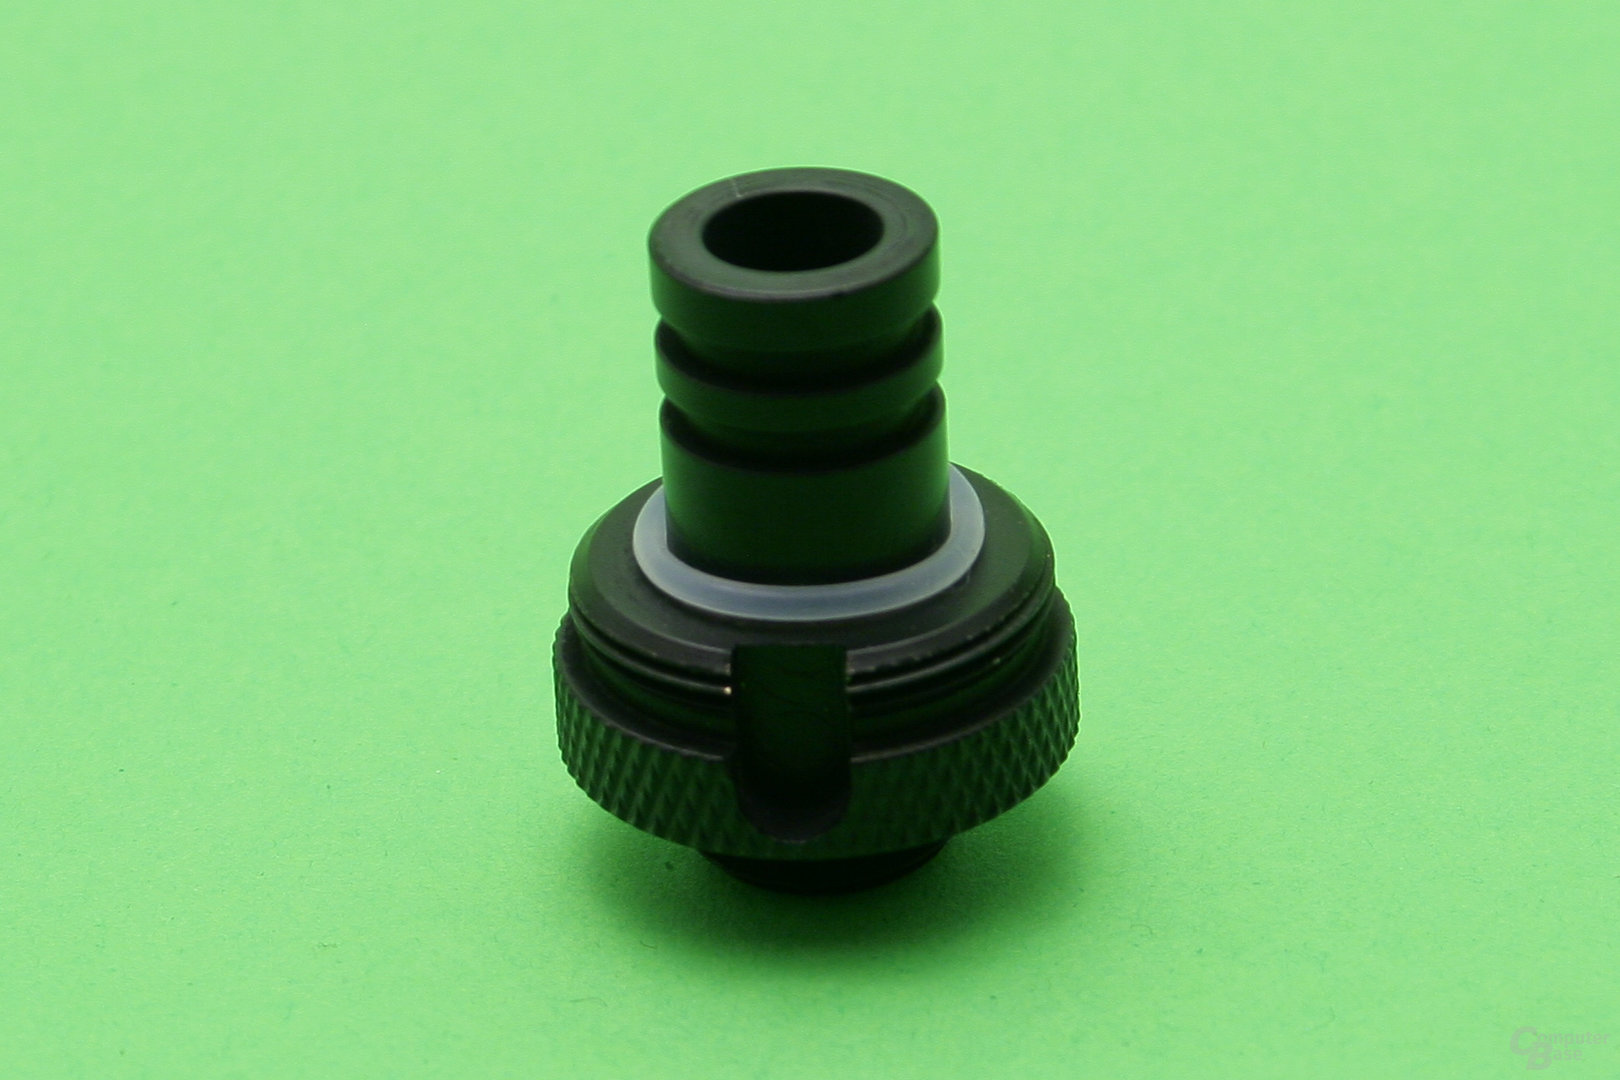 CoolForce LED-Fitting mit Dichtungsring für LED-Ring